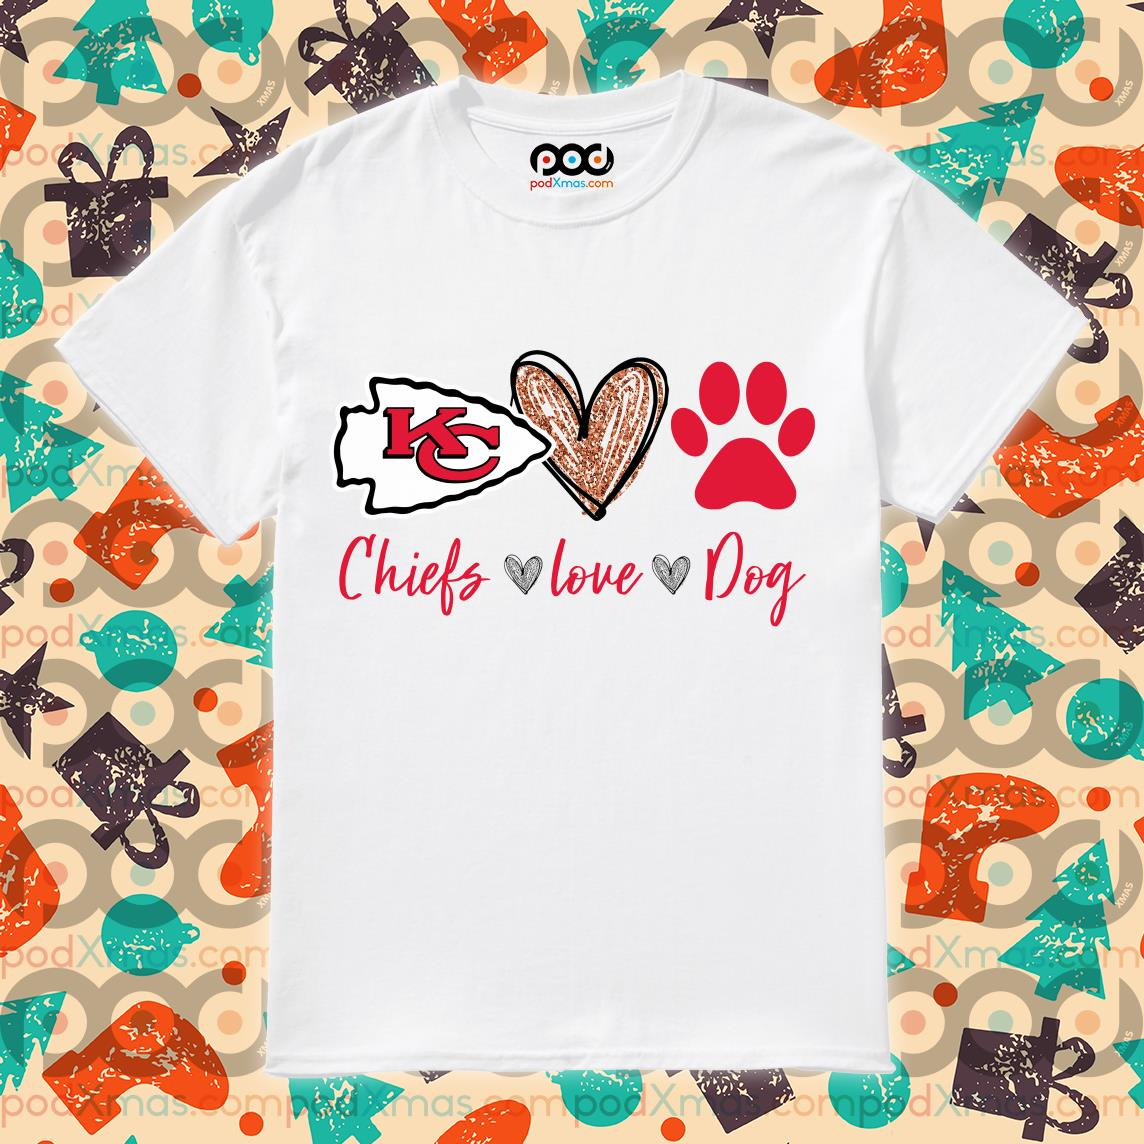 Kansas City Chiefs love dog shirt